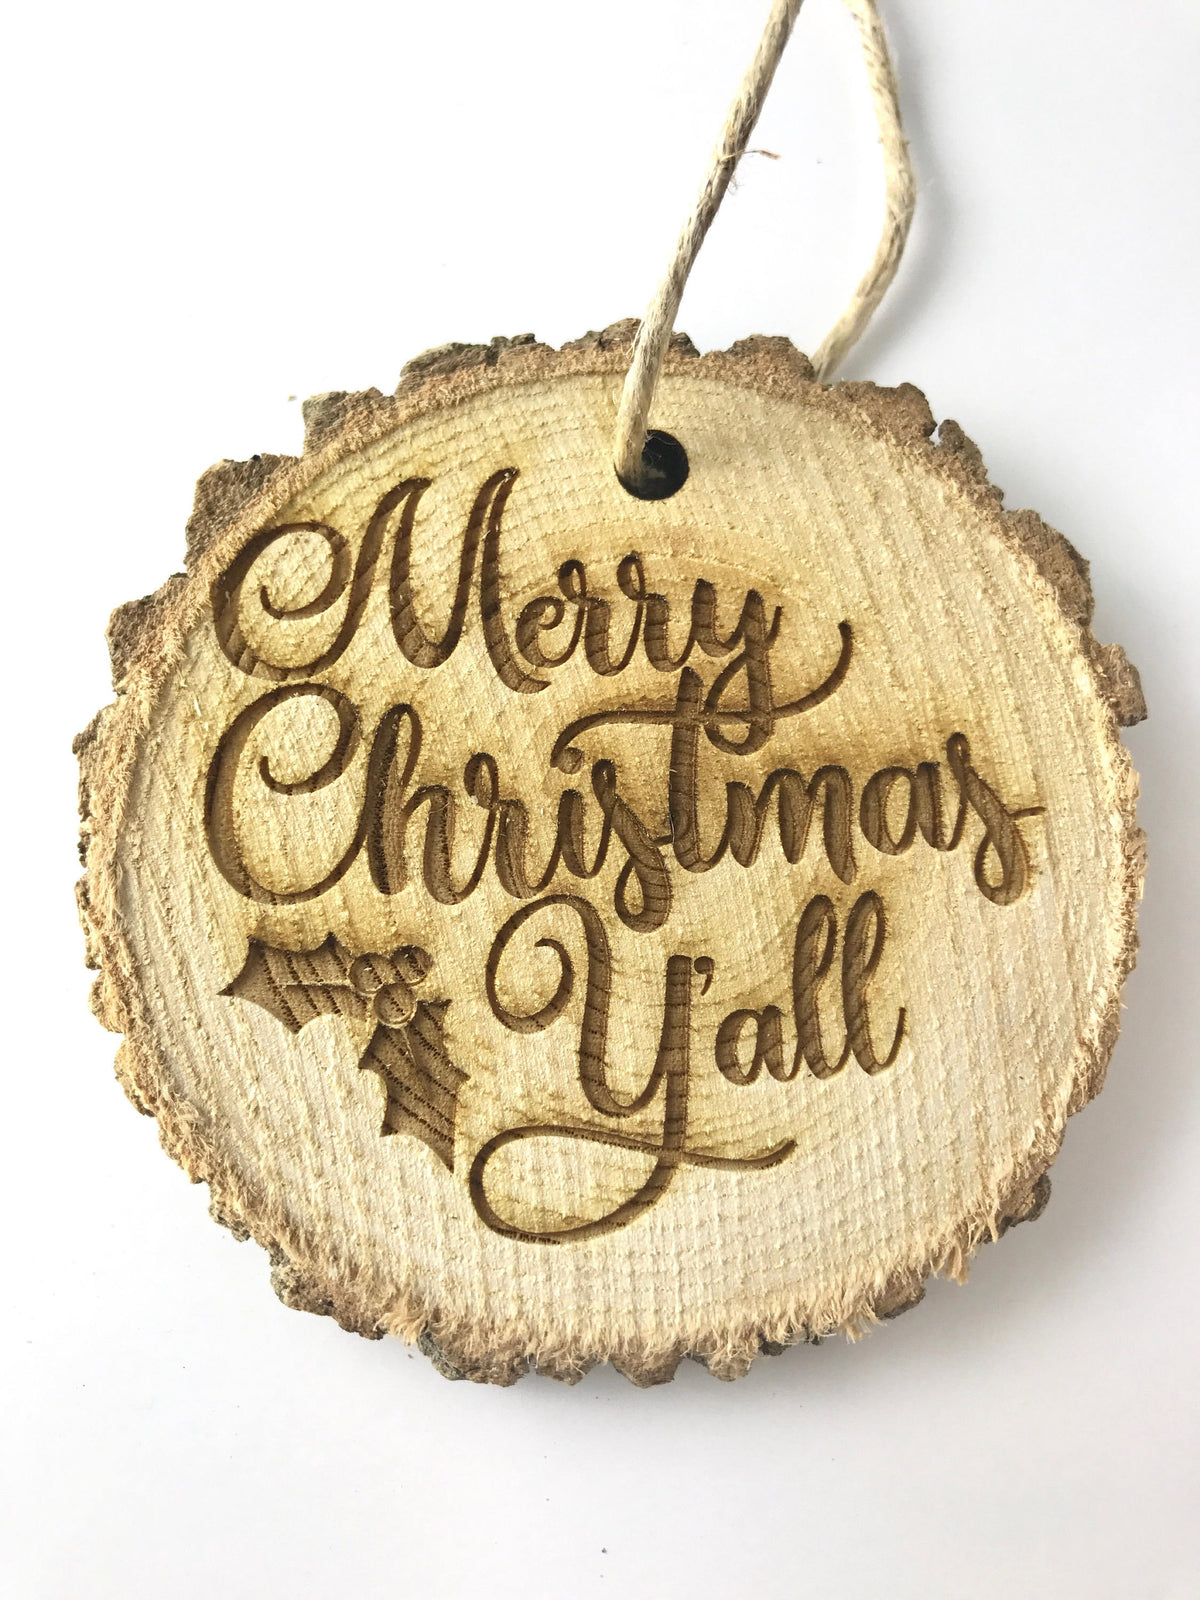 Merry Christmas Yall Rustic Christmas Ornament-Ornaments-Maddie & Co.